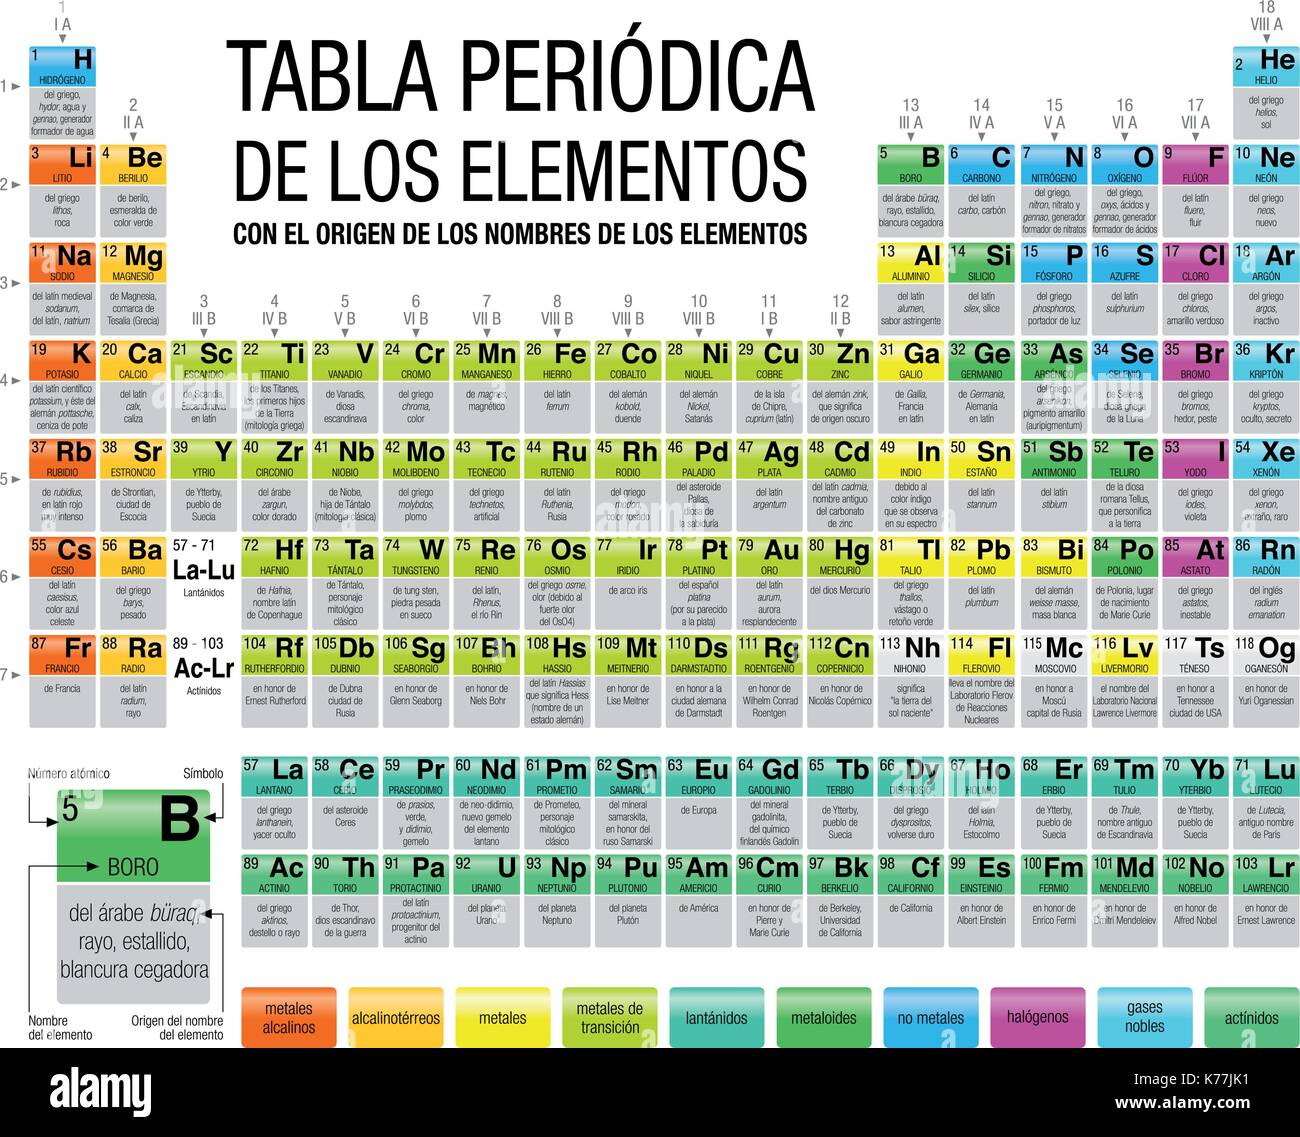 Tabla peridica de los elementos con el origen de los nombres de los tabla peridica de los elementos con el origen de los nombres de los elementos periodic table of elements with the origin of the names of the element urtaz